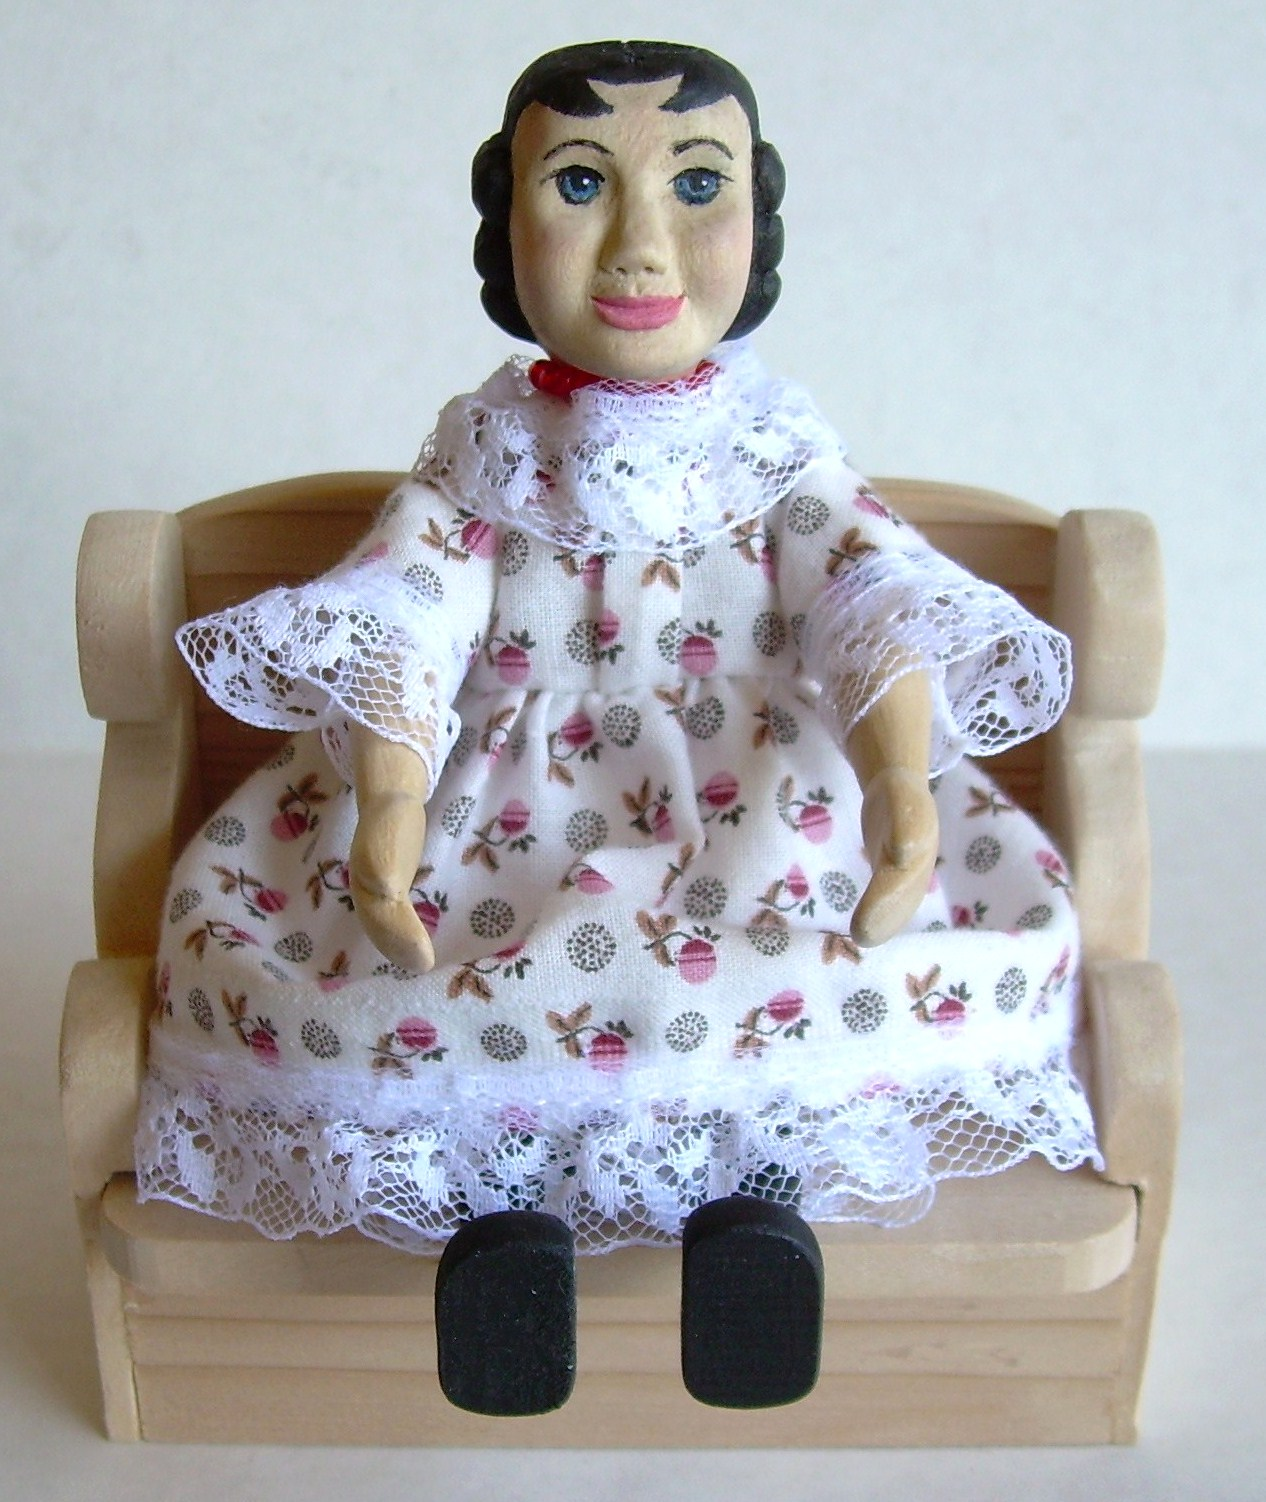 "#3, HITTY ""Becca"", doll, dress, bonnet, pantalets, $125.00 + $10.00 S/H"